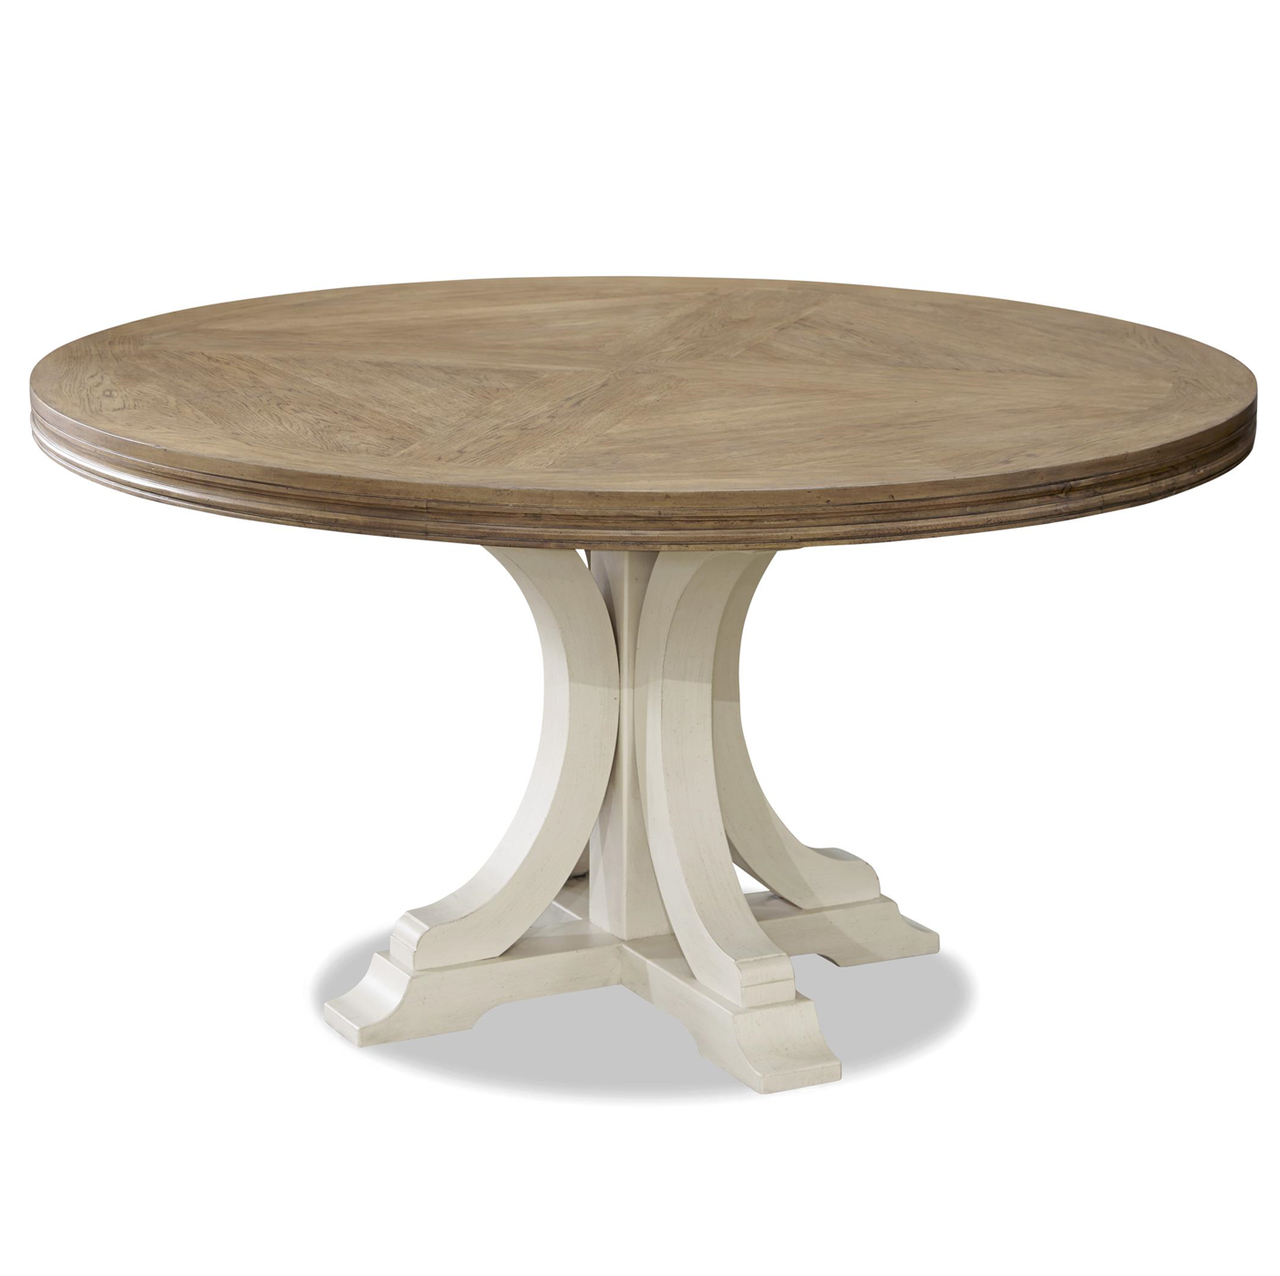 White Wood Dining Table: French Modern White Wood Pedestal Round Dining Table 58